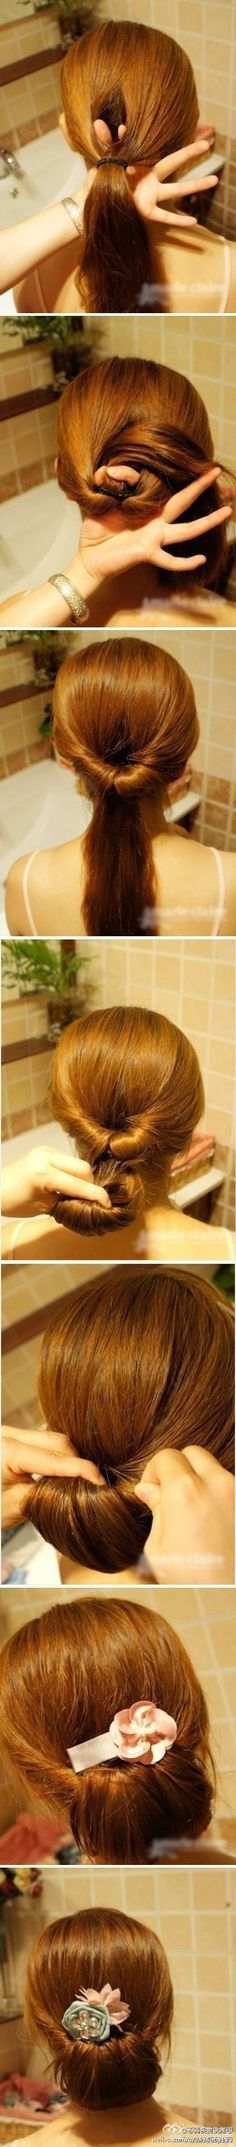 Expert Hair Care Tips For Any Age. Your hair might be your worst enemy, but it does not have to be! You can reclaim your hair with a little research and effort. First, identify your hair typ Five Minute Hairstyles, Easy Hairstyles, Wedding Hairstyles, Hairstyle Ideas, Summer Hairstyles, Office Hairstyles, Creative Hairstyles, Latest Hairstyles, Hairstyles 2018